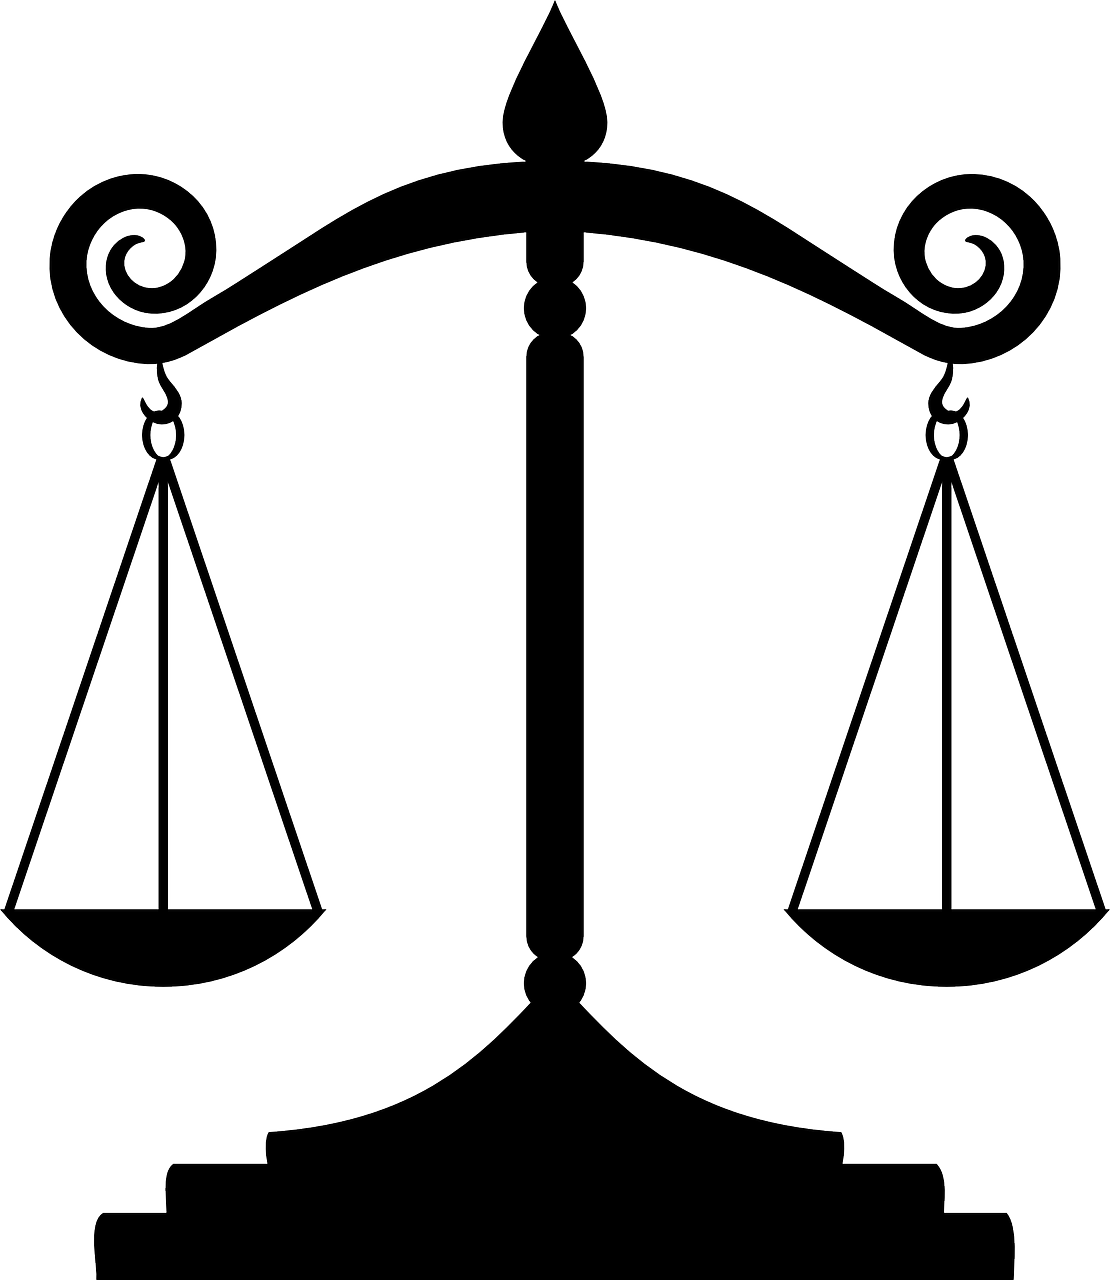 Justice vector lawyer symbol. Law firms diplawmatic dialogues